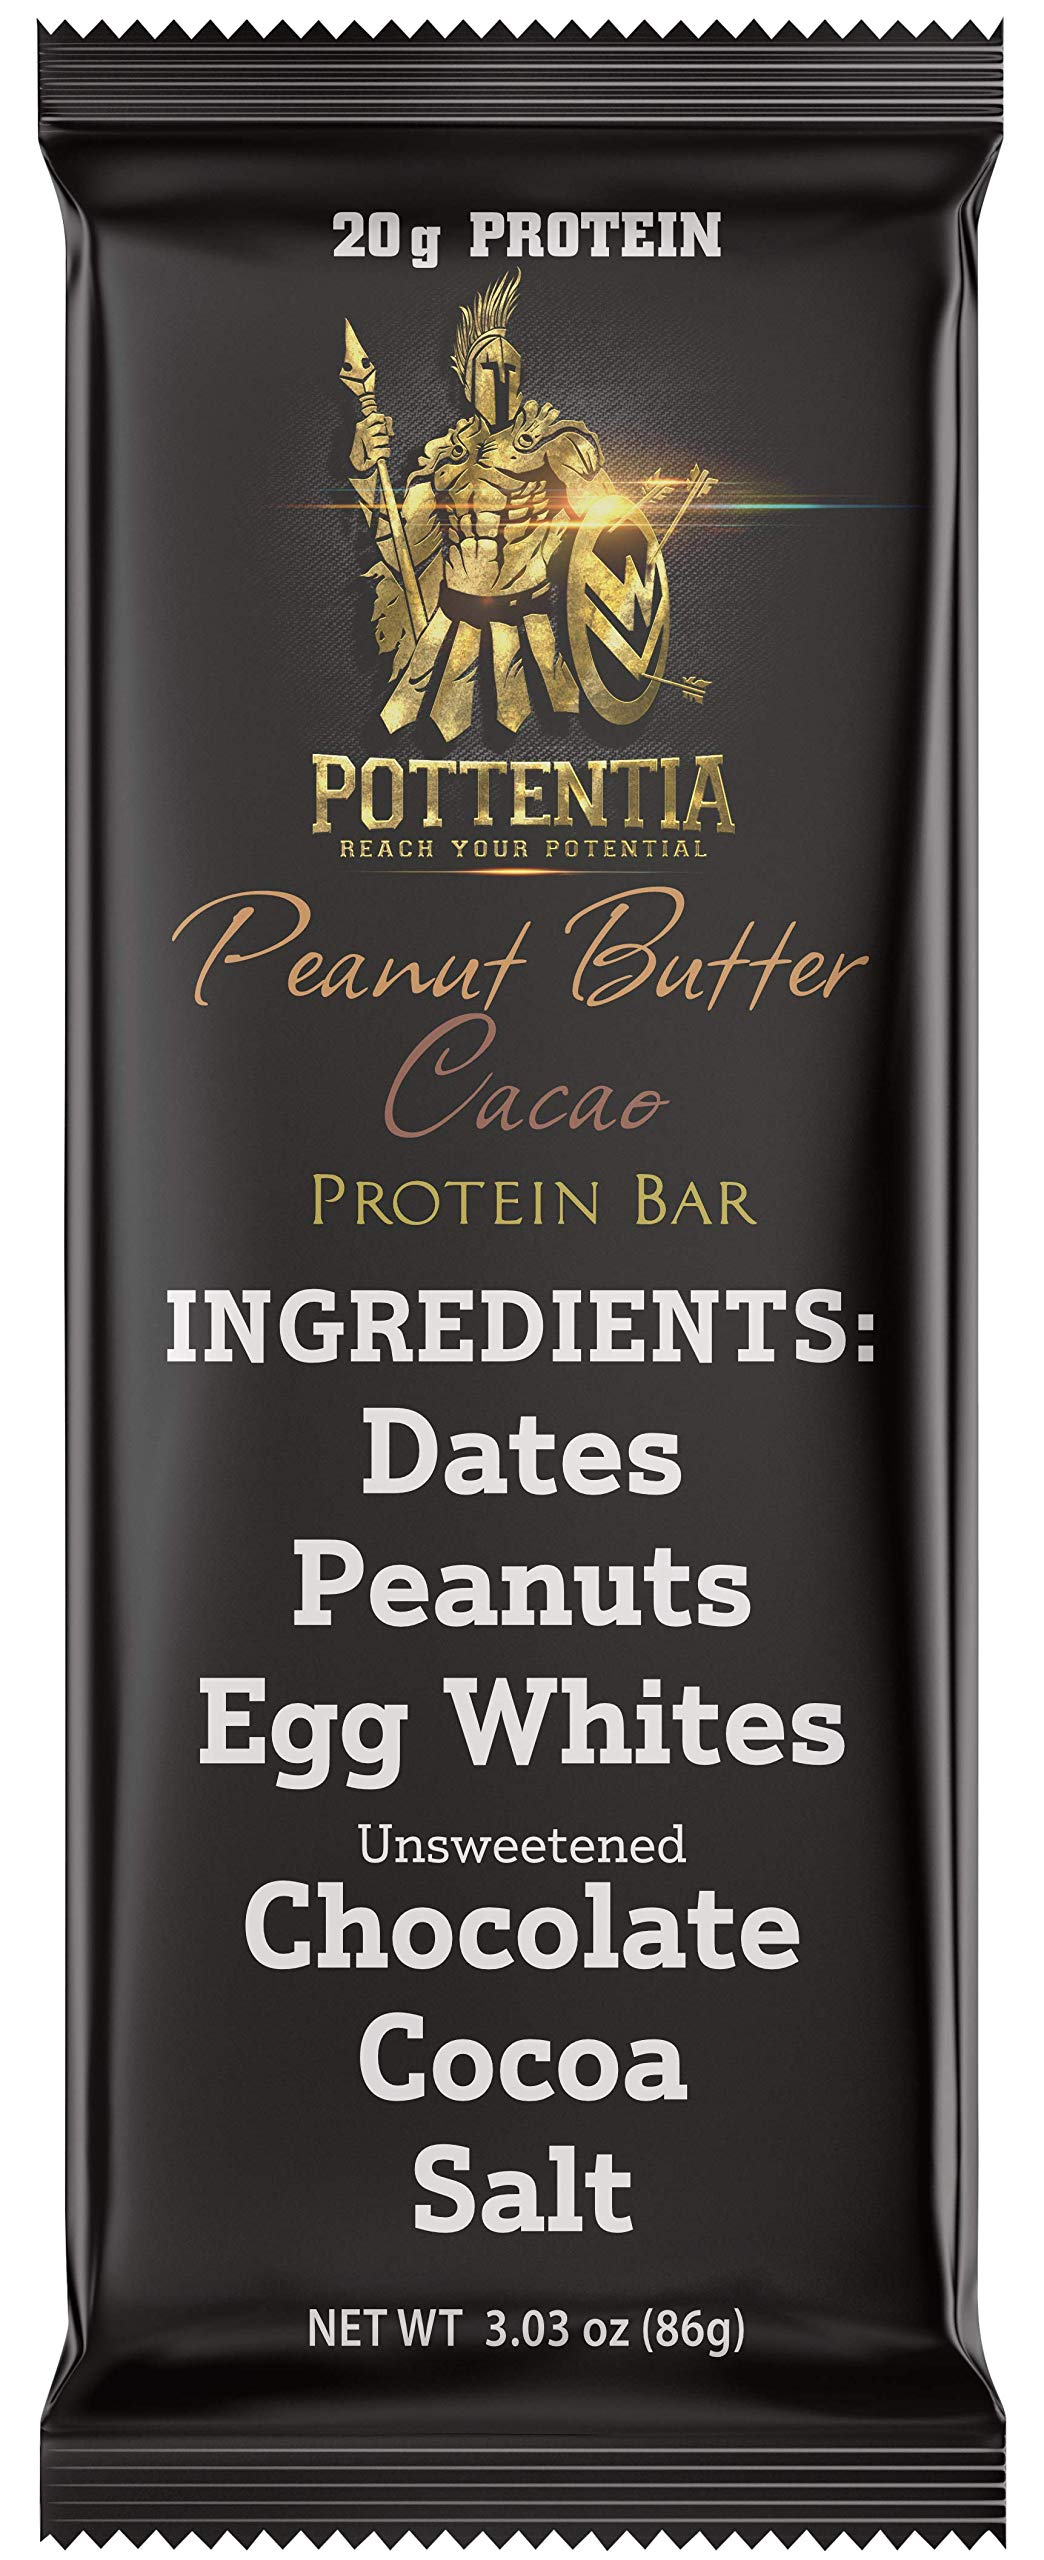 Pottentia Whole Food Meal Replacement Protein Bar, 20 Grams Protein, Peanut Butter Cacao, Dairy Free, Egg White, Gluten Free, 6 Ingredients, 8 Large 86 Gram Bars, High Fiber, No GMO, No Soy by Pottentia